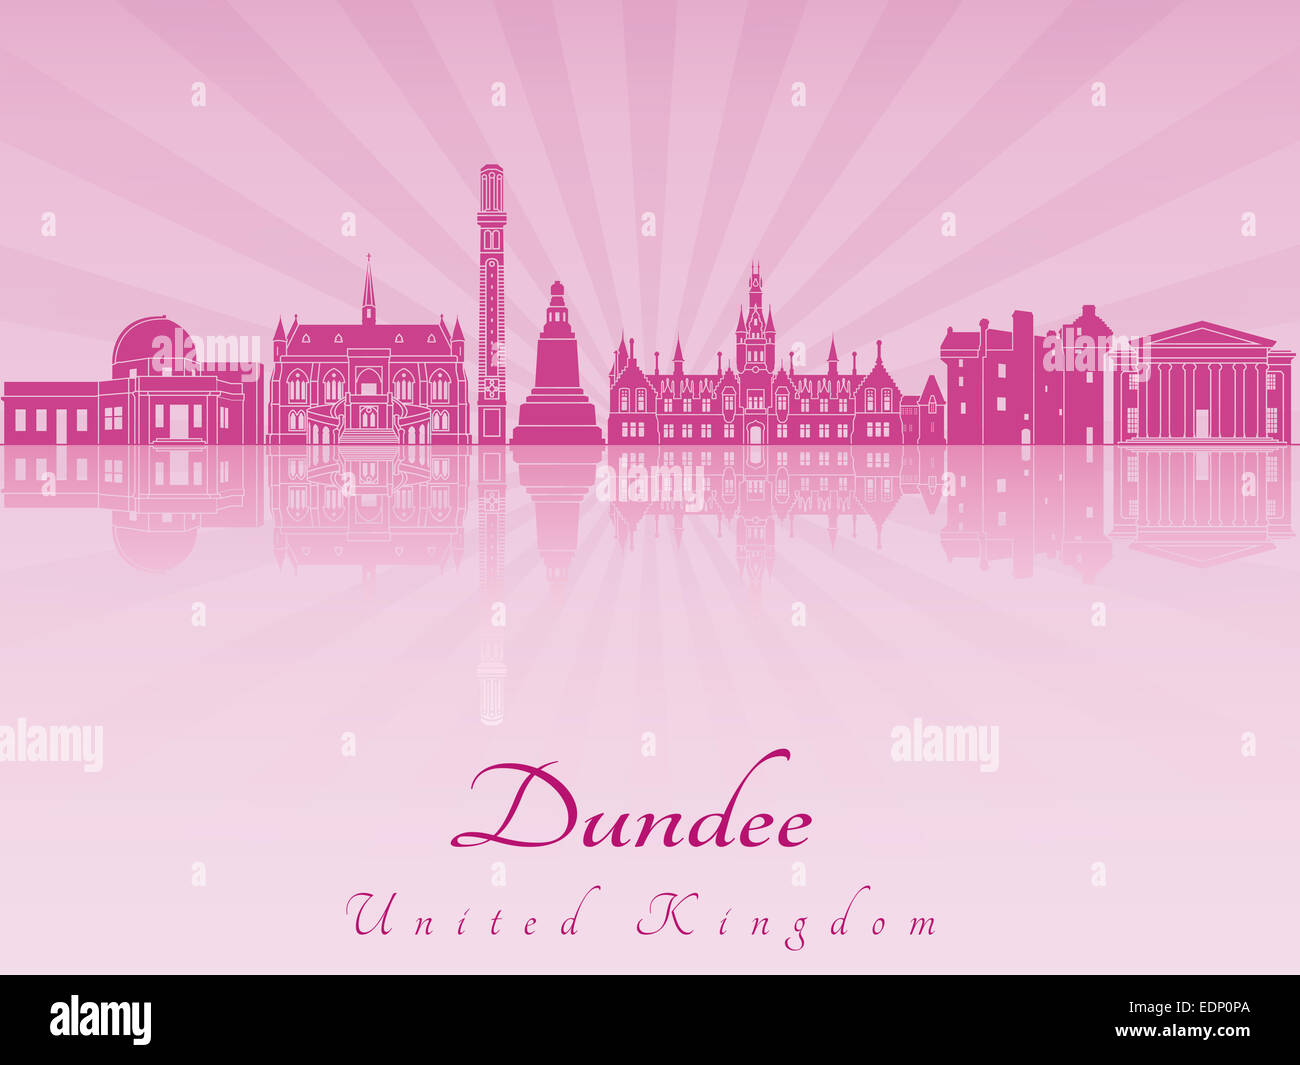 Dundee skyline in purple radiant orchid - Stock Image